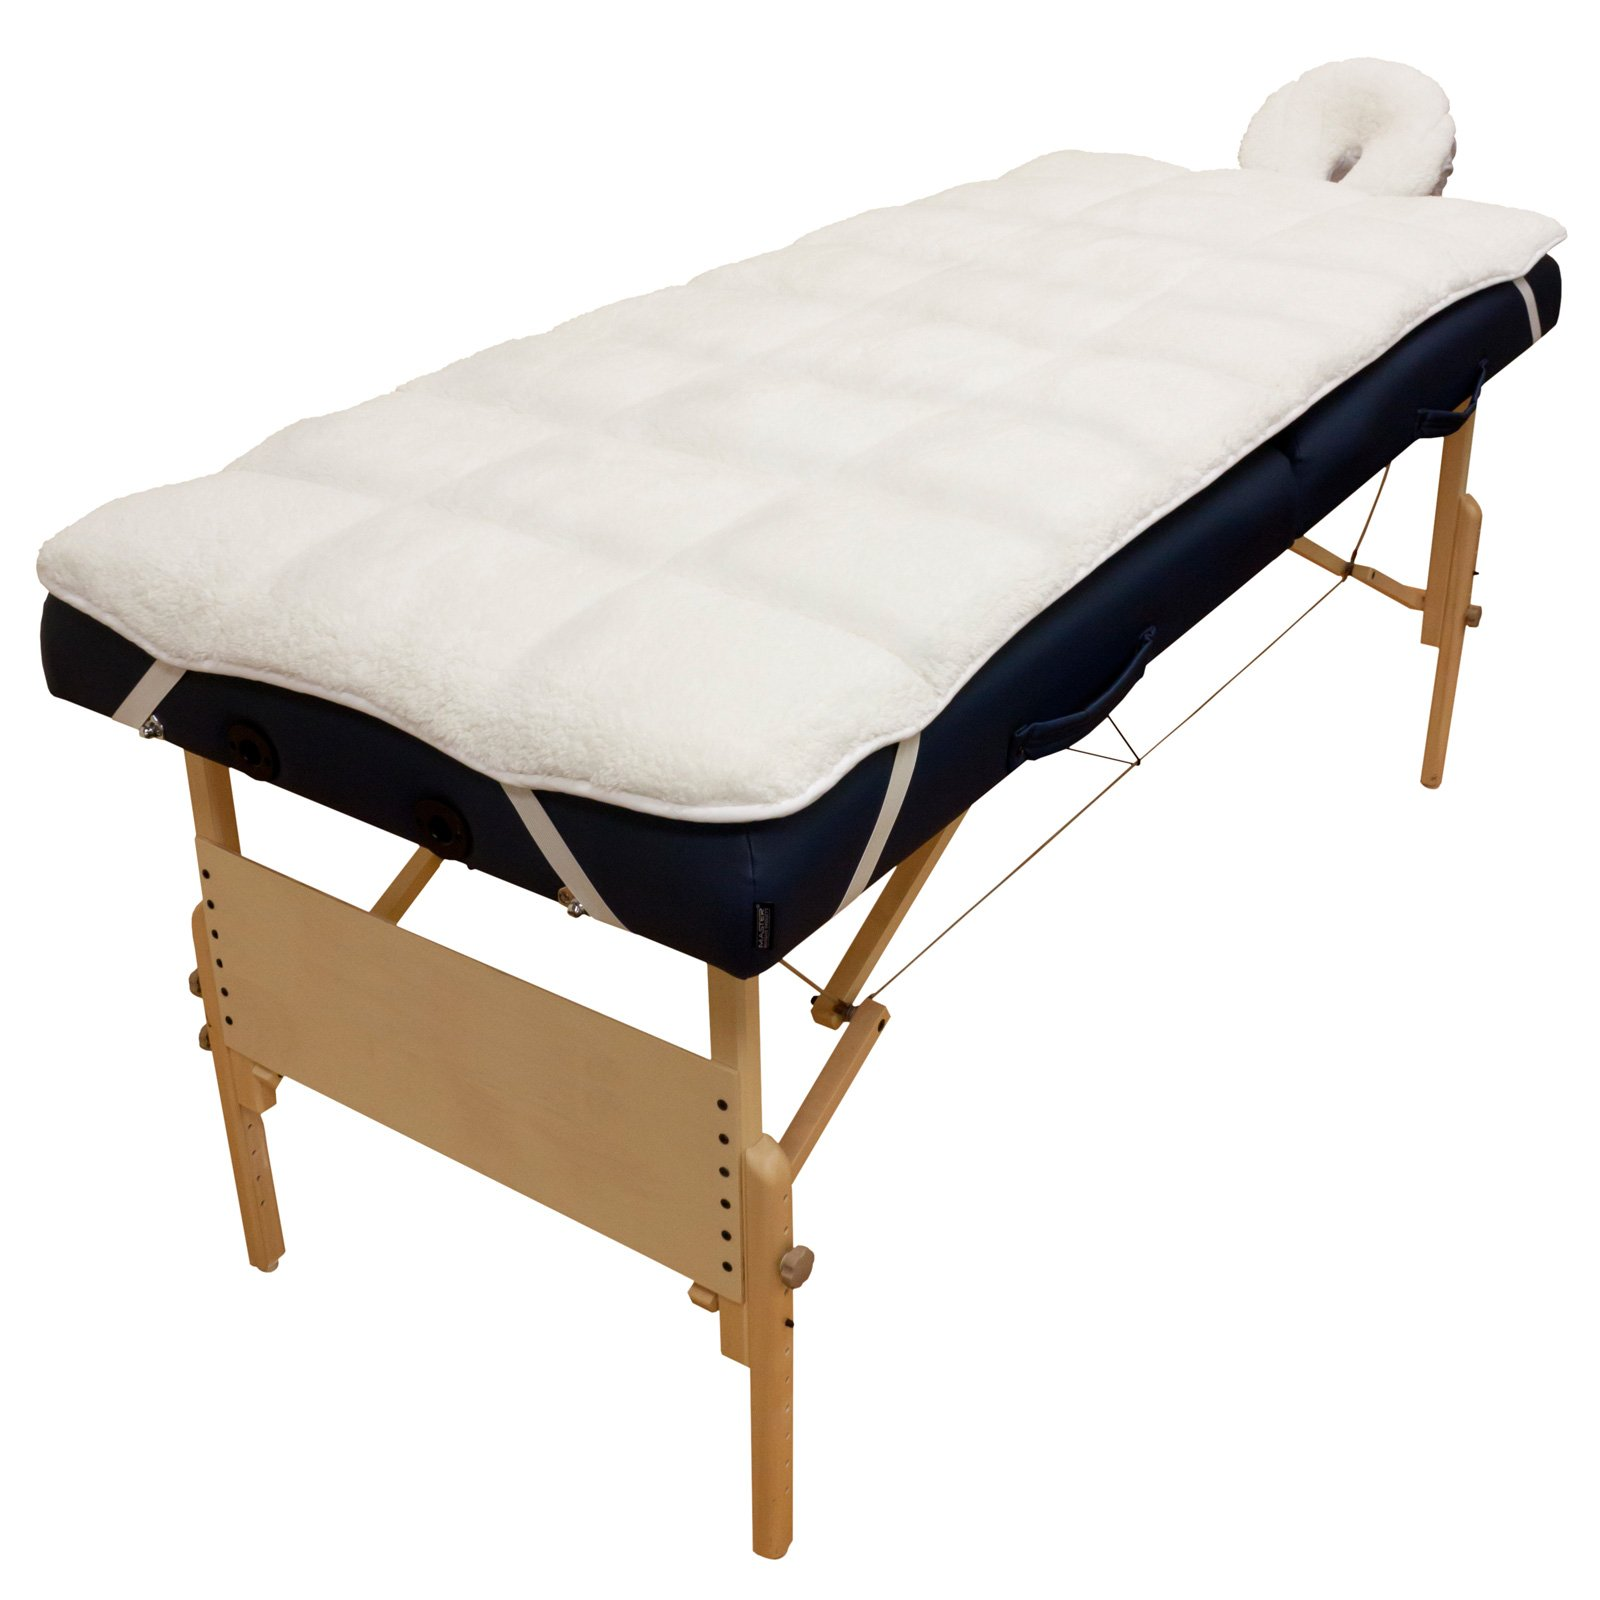 Body Linen Abundance Deluxe Quilted Fleece Massage Table Pad Set, 3.2 Pound by Body Linen